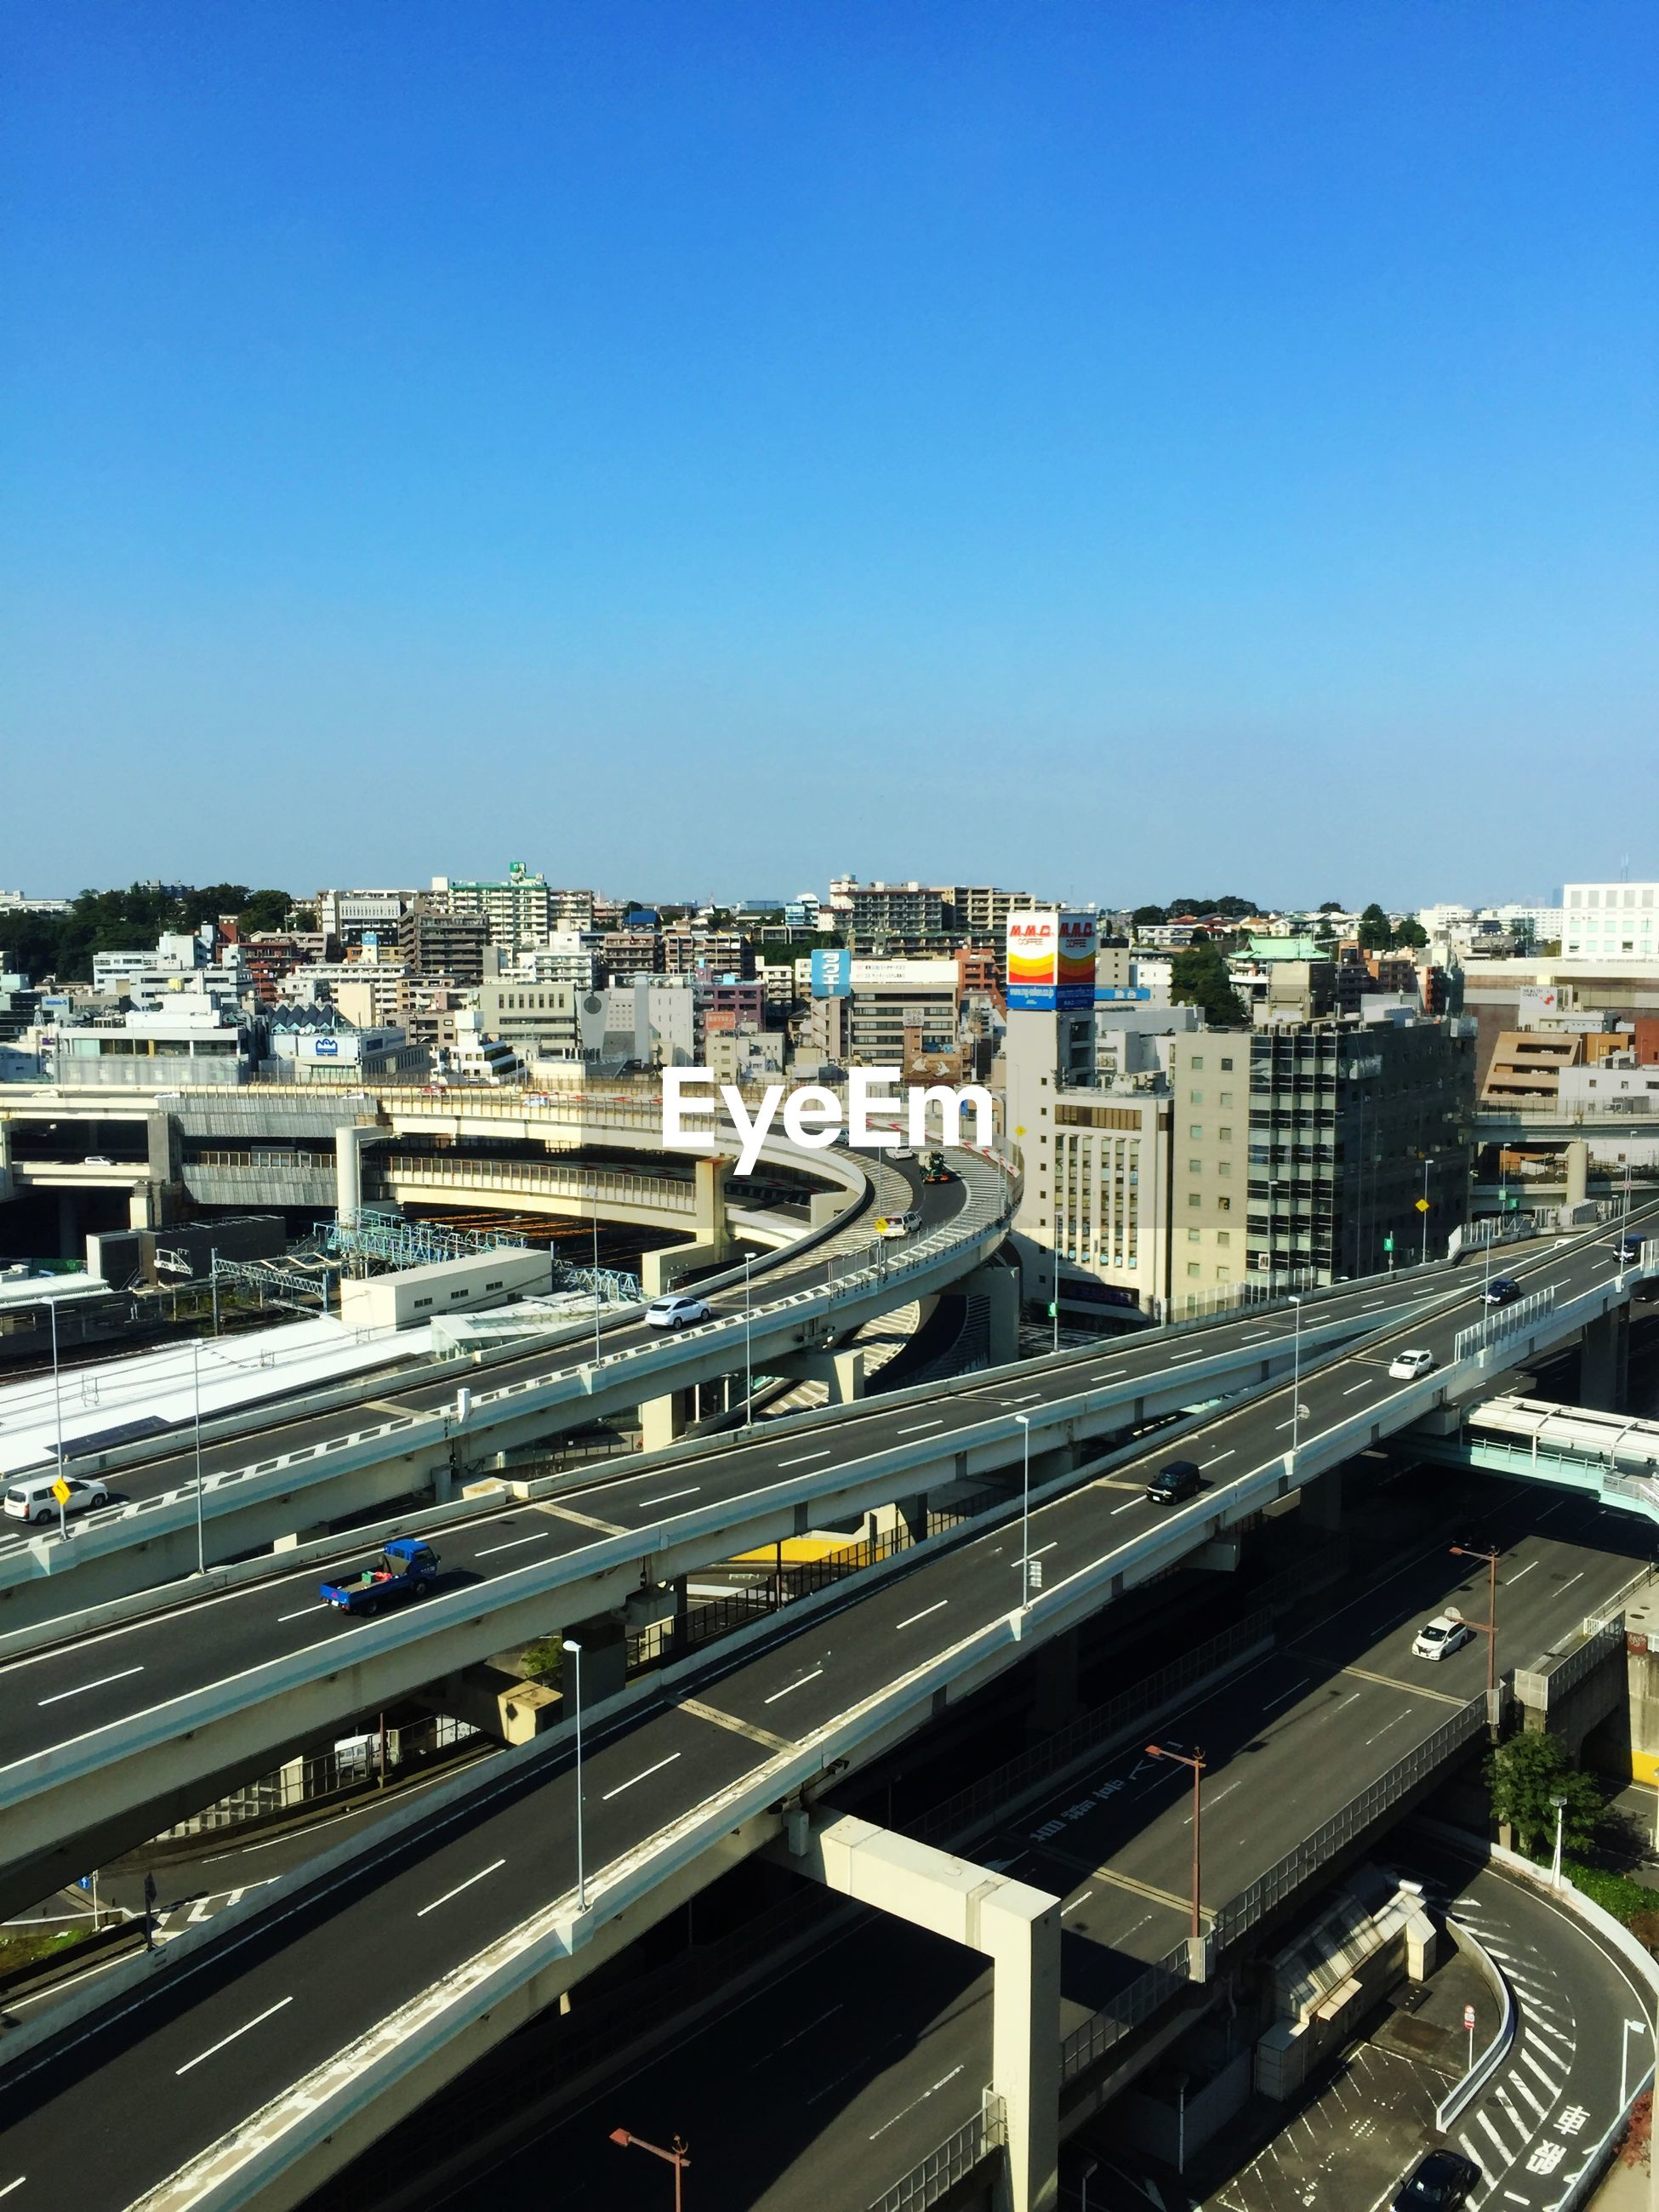 High angle view of highways and buildings in city against clear blue sky